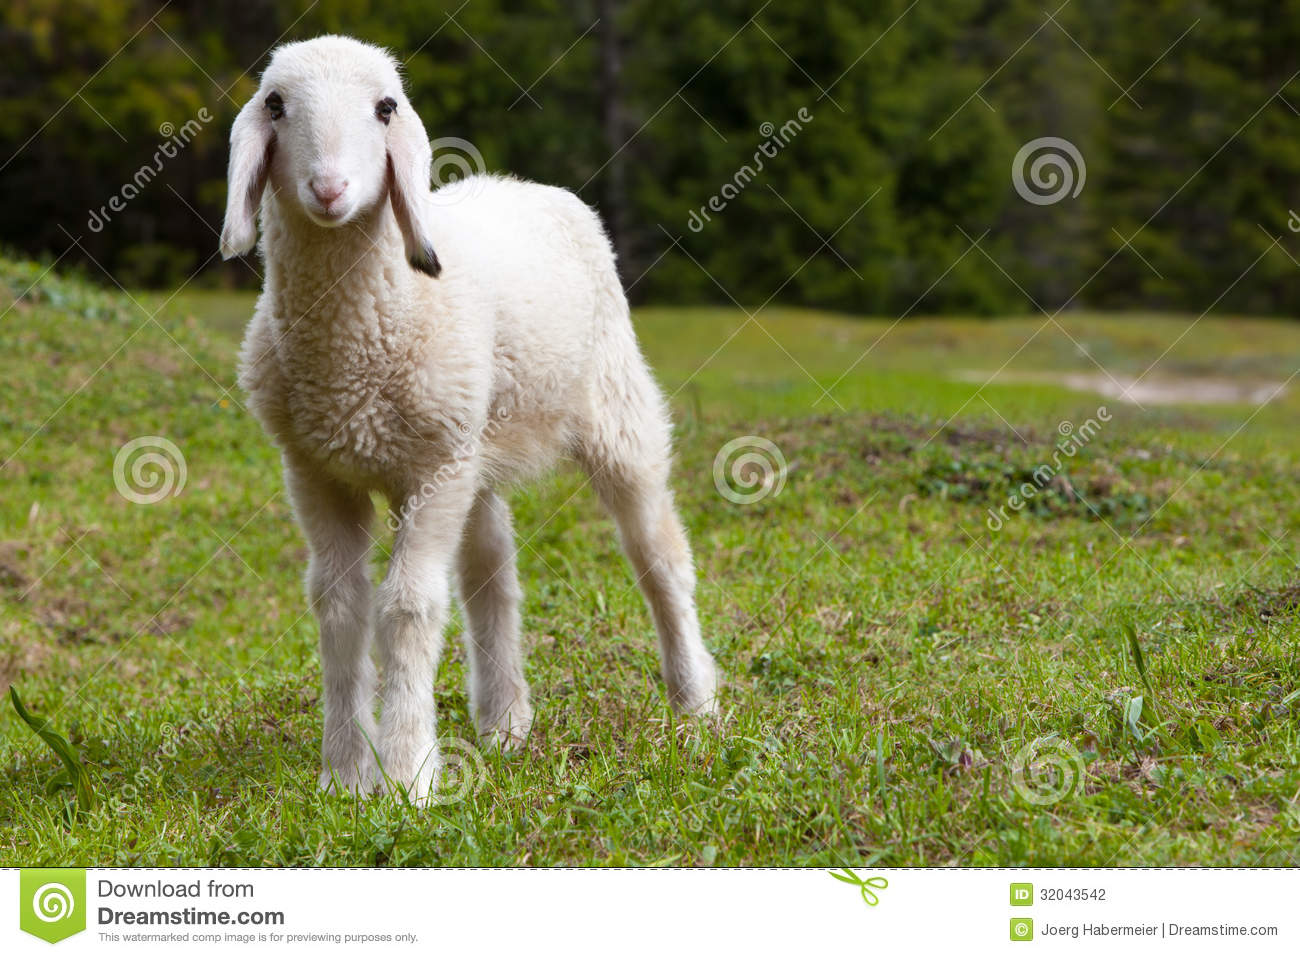 Exceptionally Cute White Lamb In Green Meadow Stock Photo